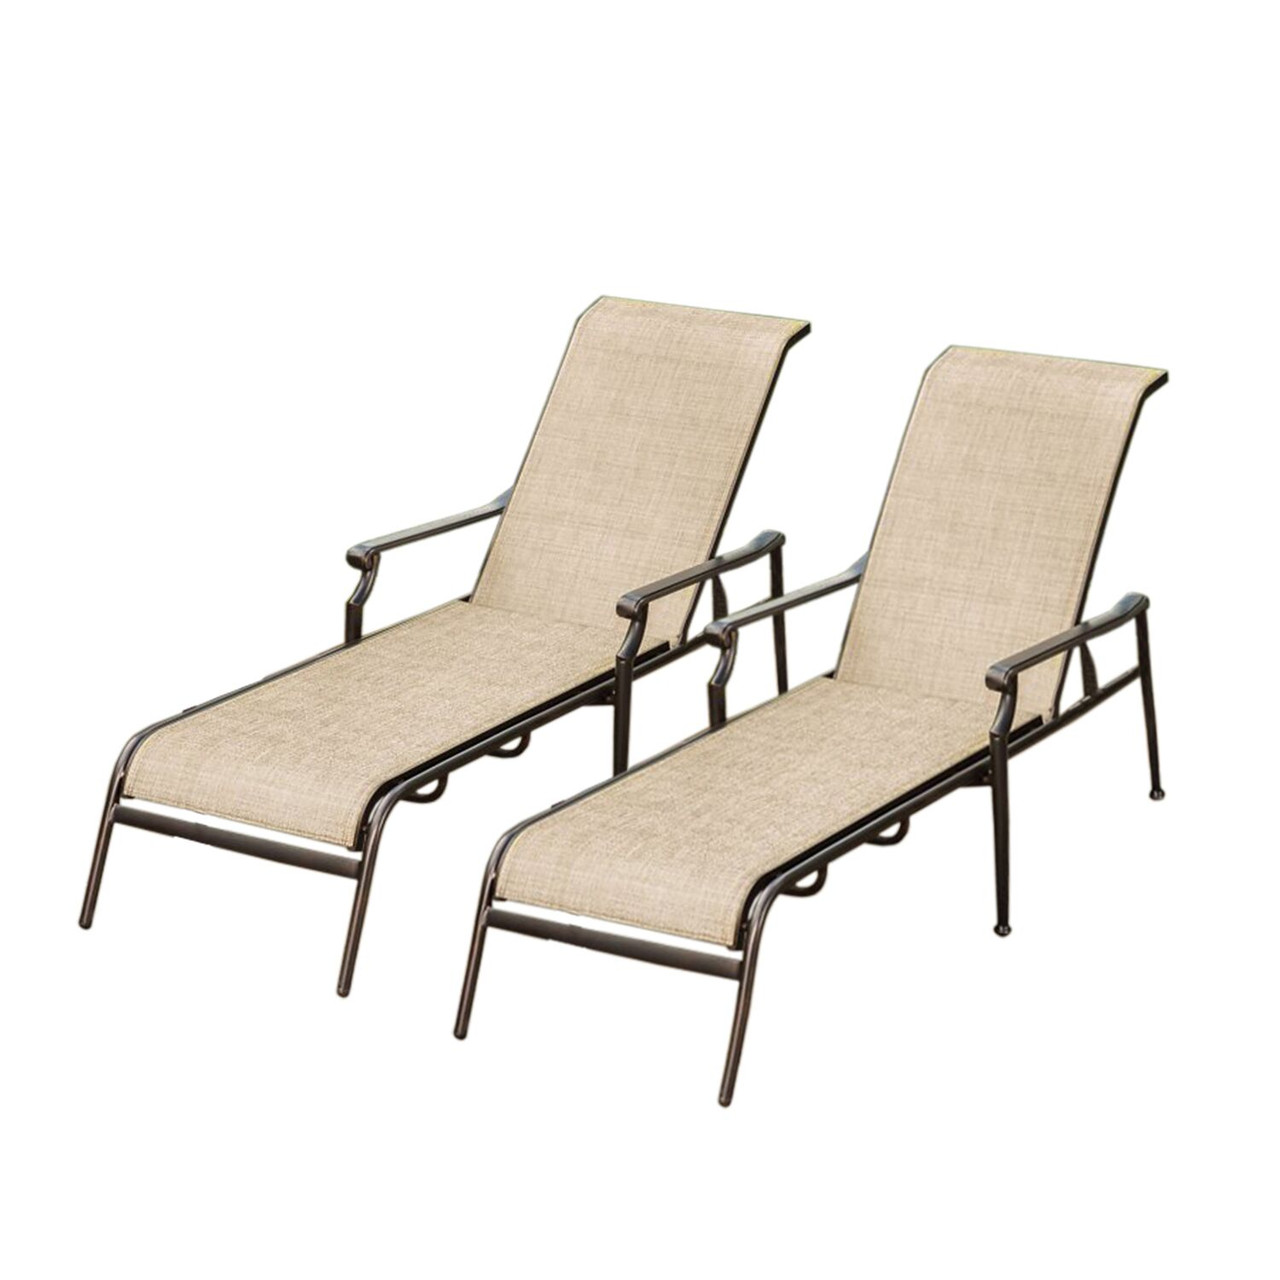 Set Of 2 Beige And Brown Outdoor Aluminum Reclining Patio Chaise Lounge  Chairs   32738529